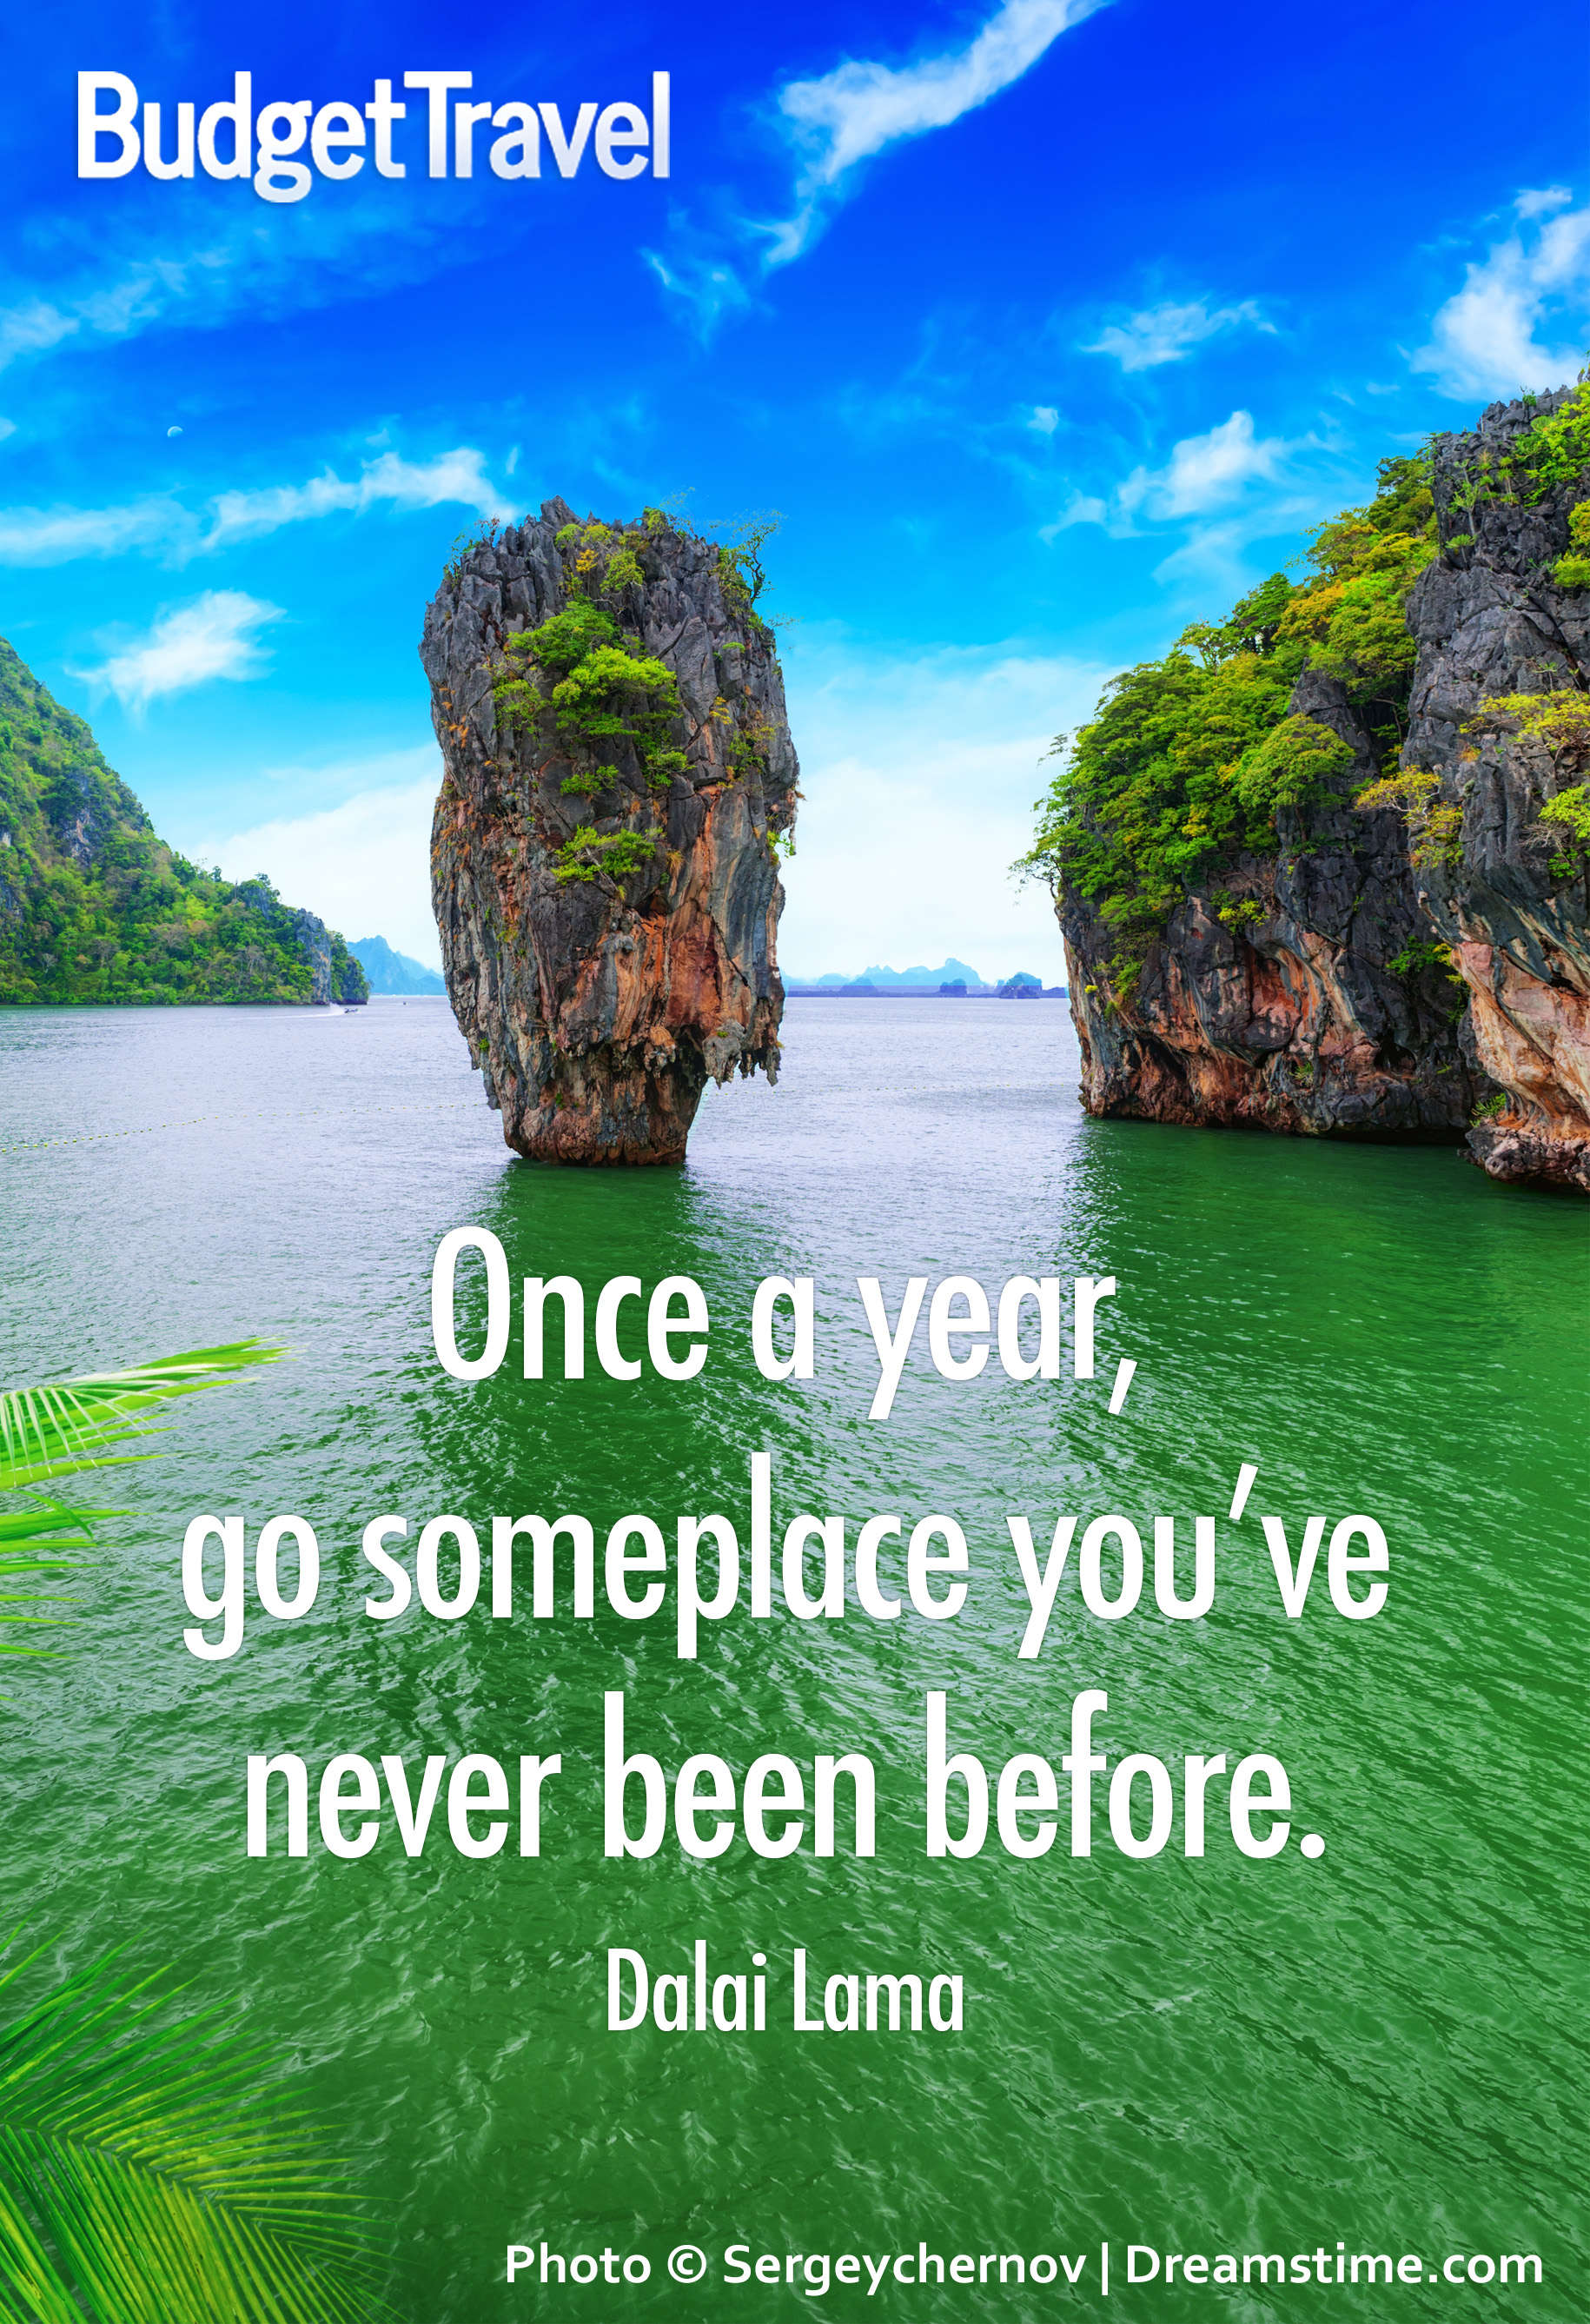 once-a-year-go-somewhere-travel-quote-472015-191526_original